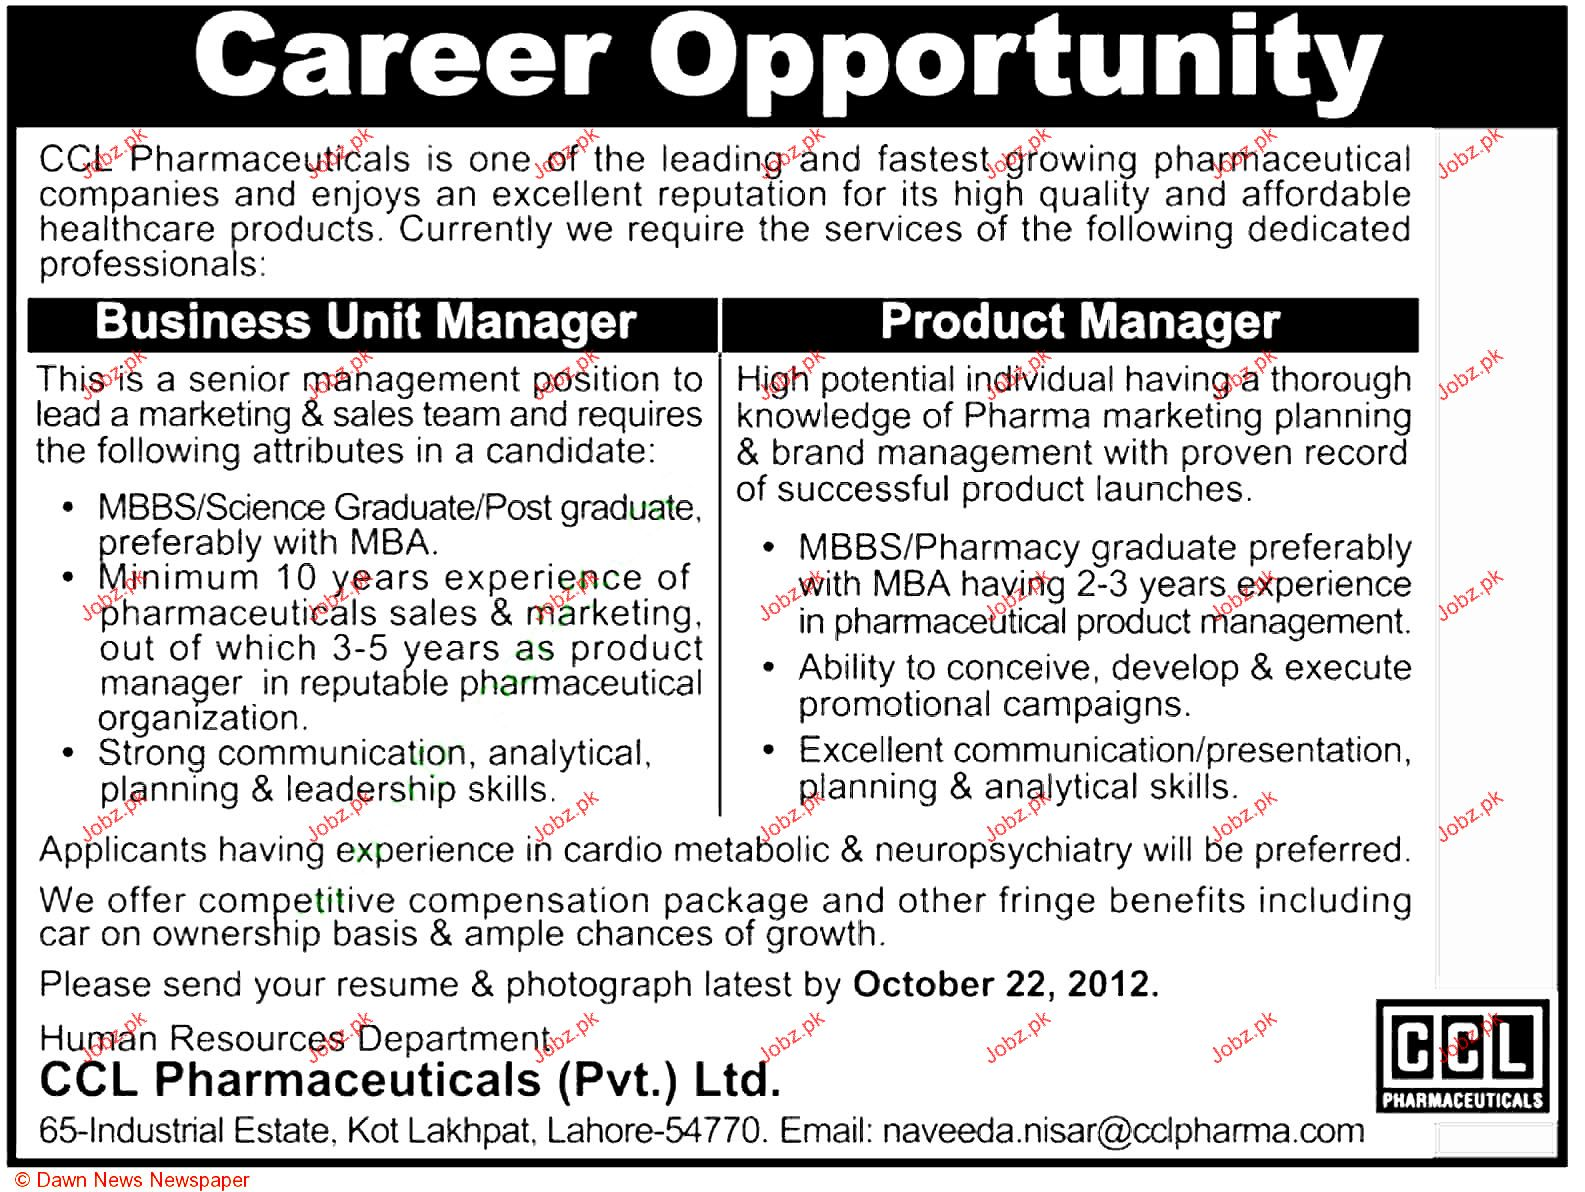 Wonderful Business Unit Manager And Product Manager Job Opportunity